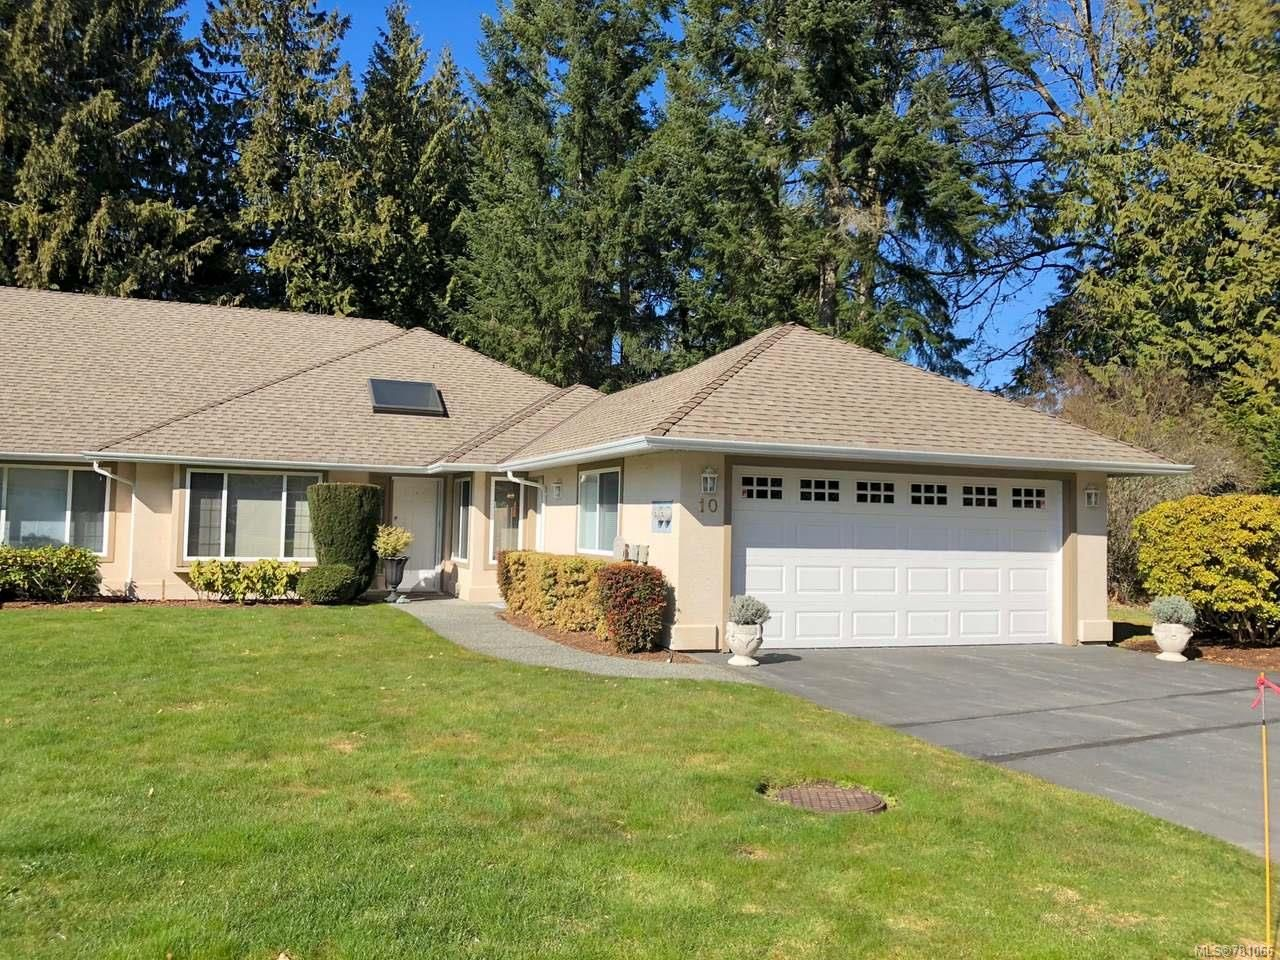 Main Photo: 10 850 ARBUTUS STREET in QUALICUM BEACH: PQ Qualicum Beach Row/Townhouse for sale (Parksville/Qualicum)  : MLS®# 781066